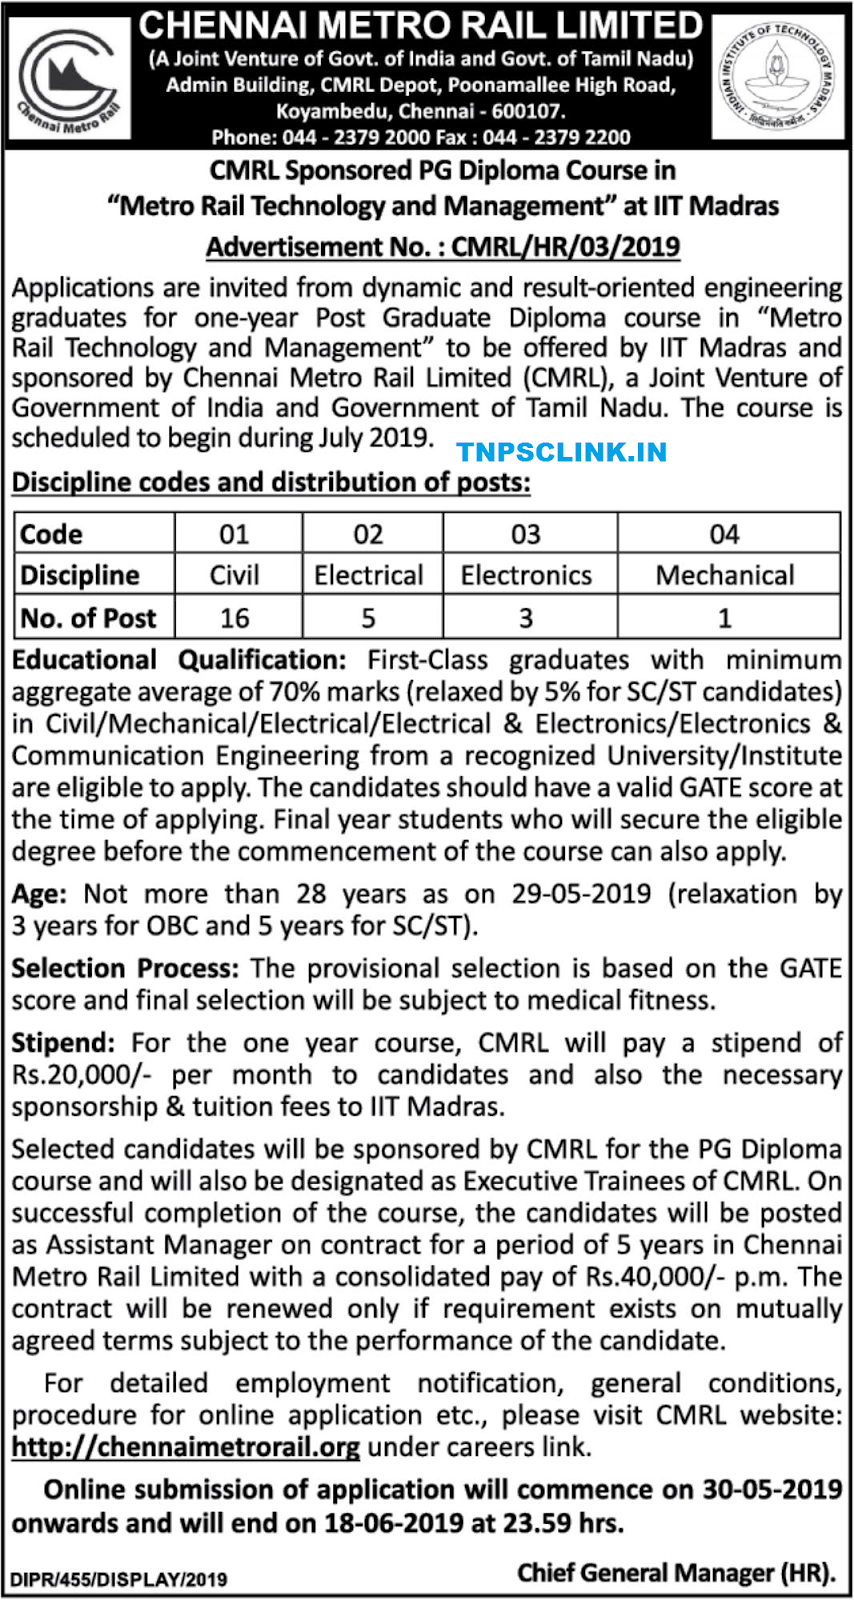 CMRL PG Diploma Course - Metro Rail Technology and Management at IIT Madras - Notification 2019